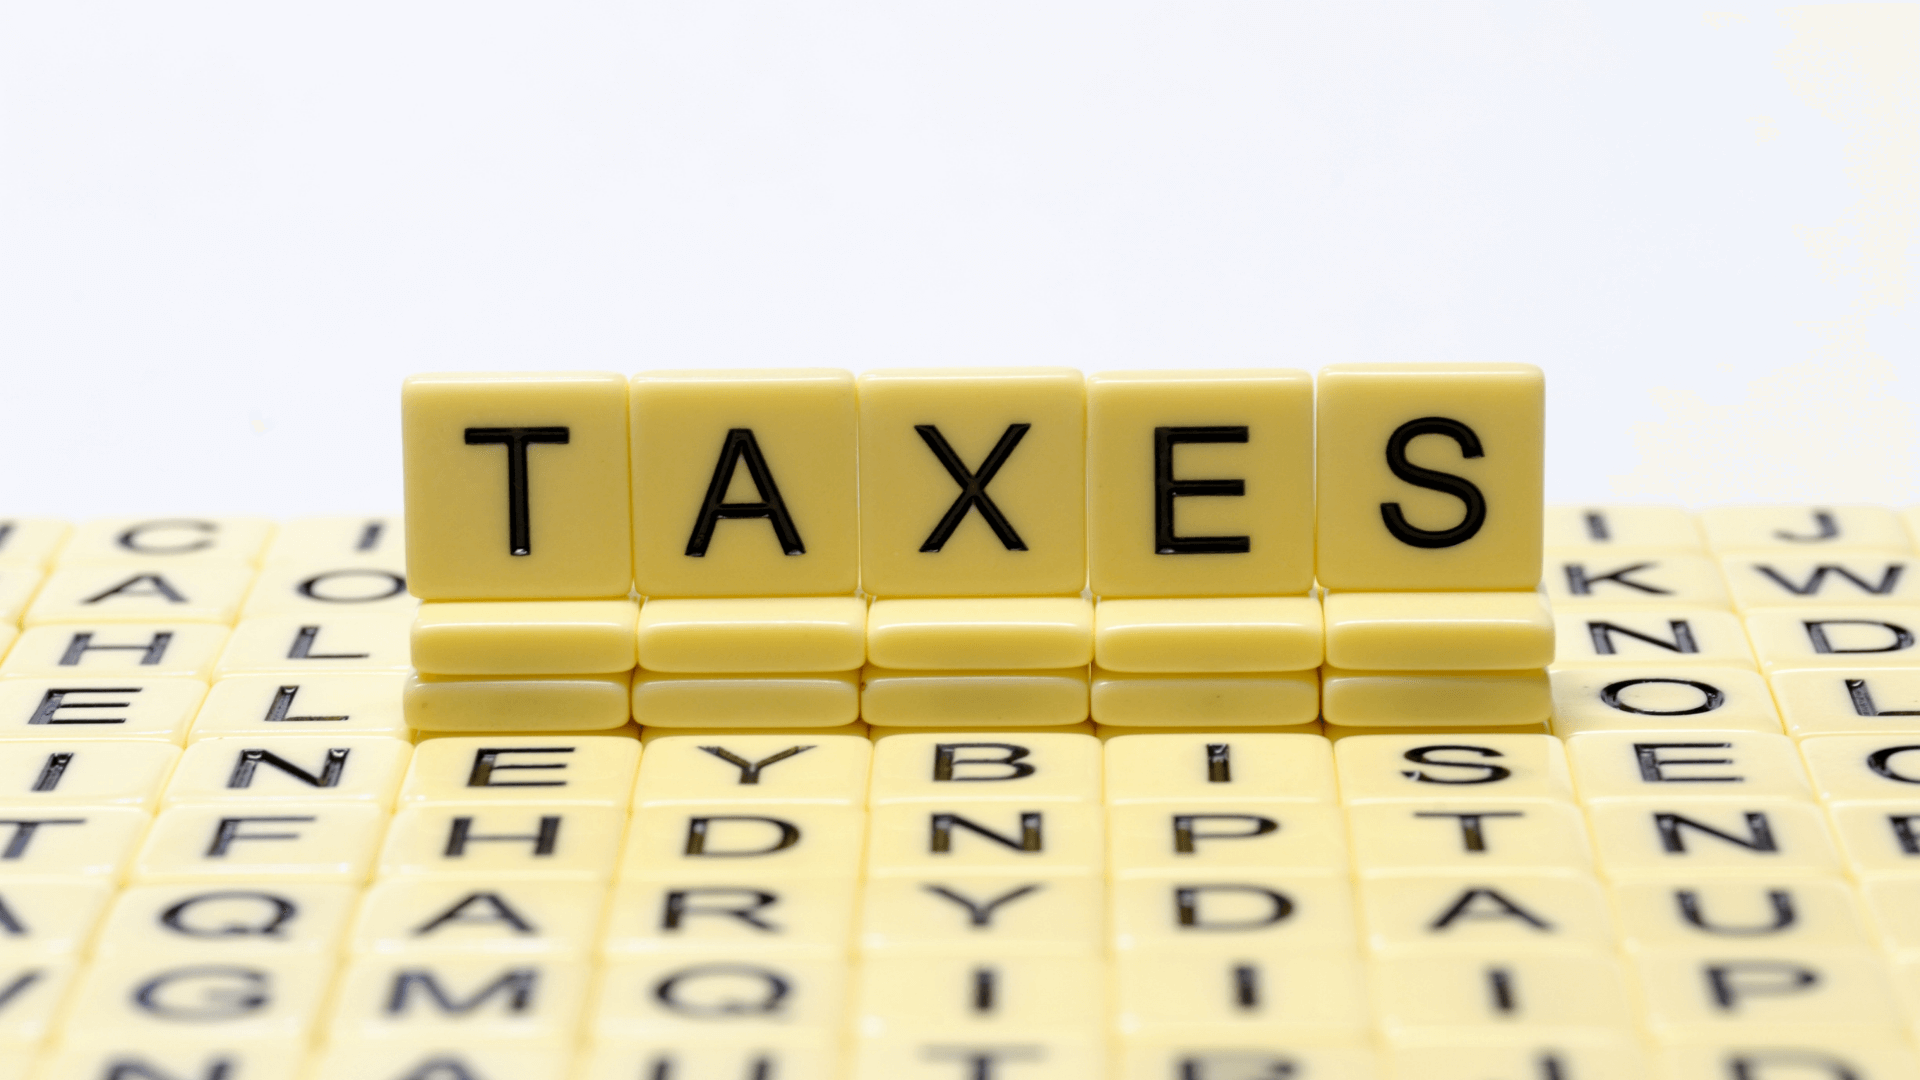 Common Tax Terminology: A concise, plain language guide to the concepts and jargon of taxes